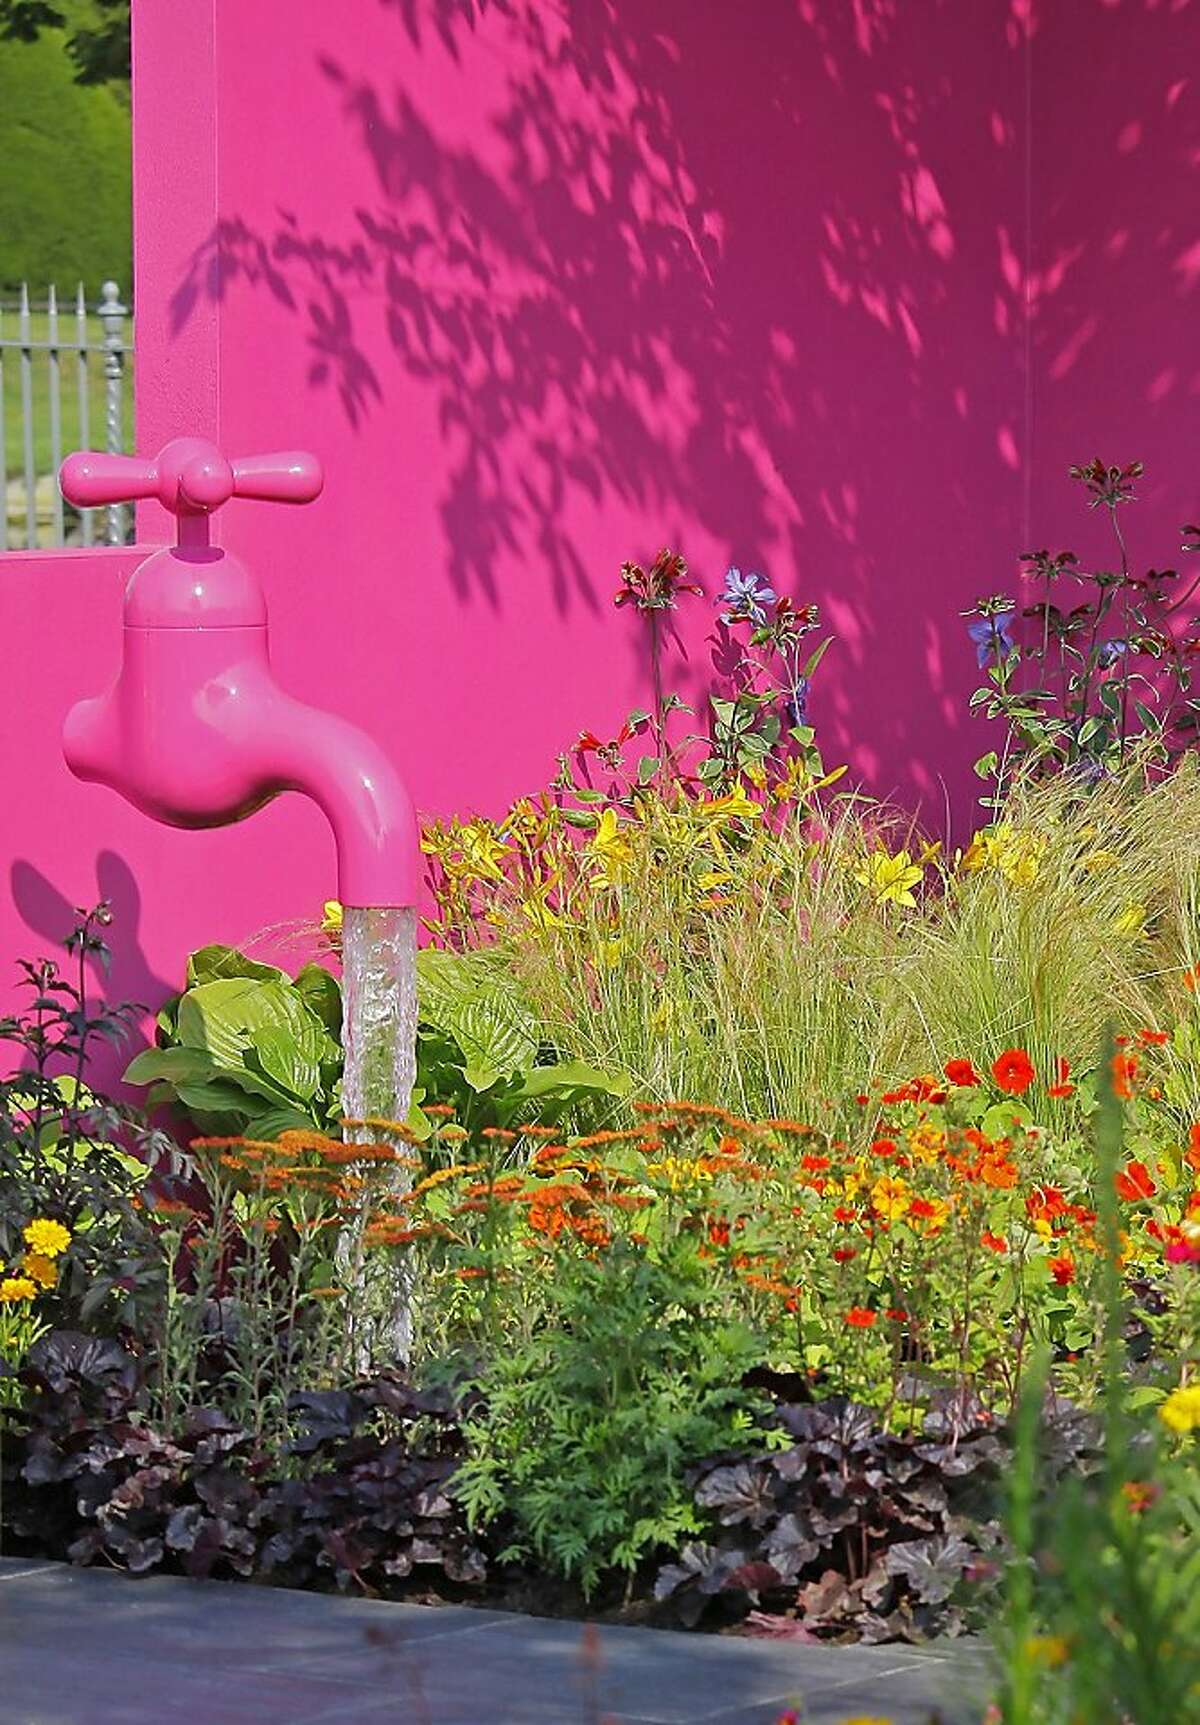 The Royal Horticultural Society's annual Chelsea Flower Show, which features the efforts of professional and amateur growers, turns 100 this May.